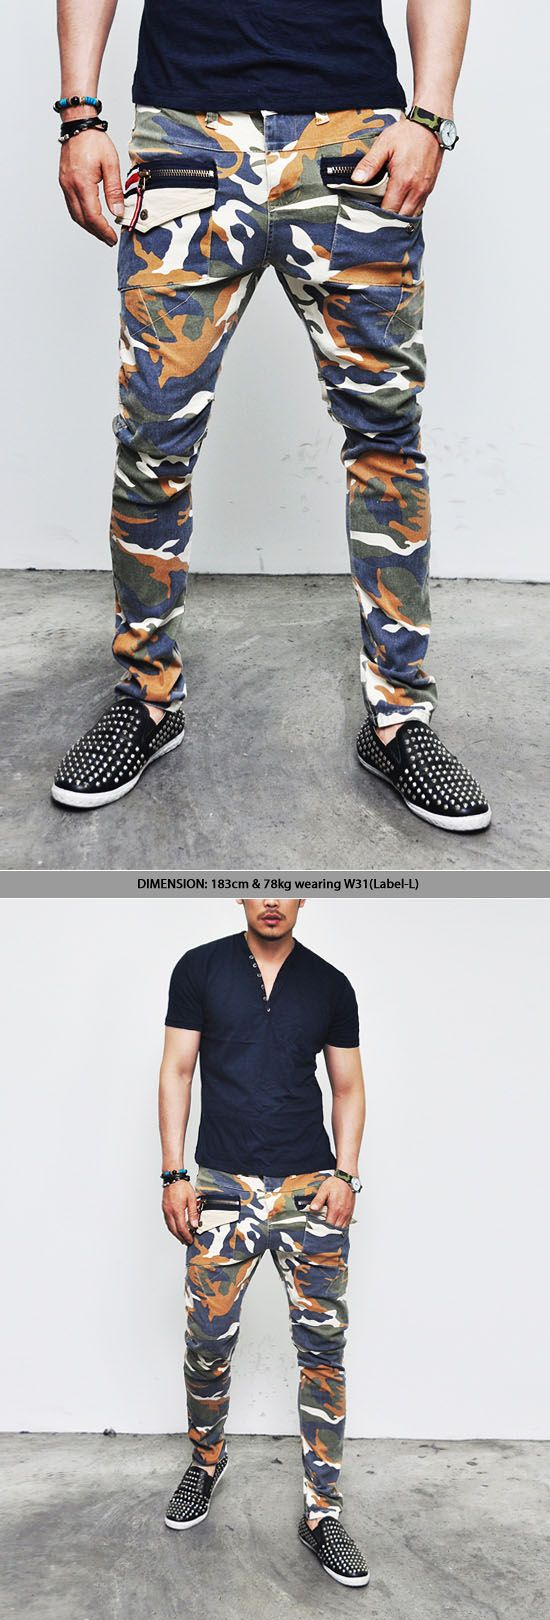 Bottoms :: Pants :: Zippered Pocket Camouflage Slim Baggy-Pants 74 - Mens Fashion Clothing For An Attractive Guy Look